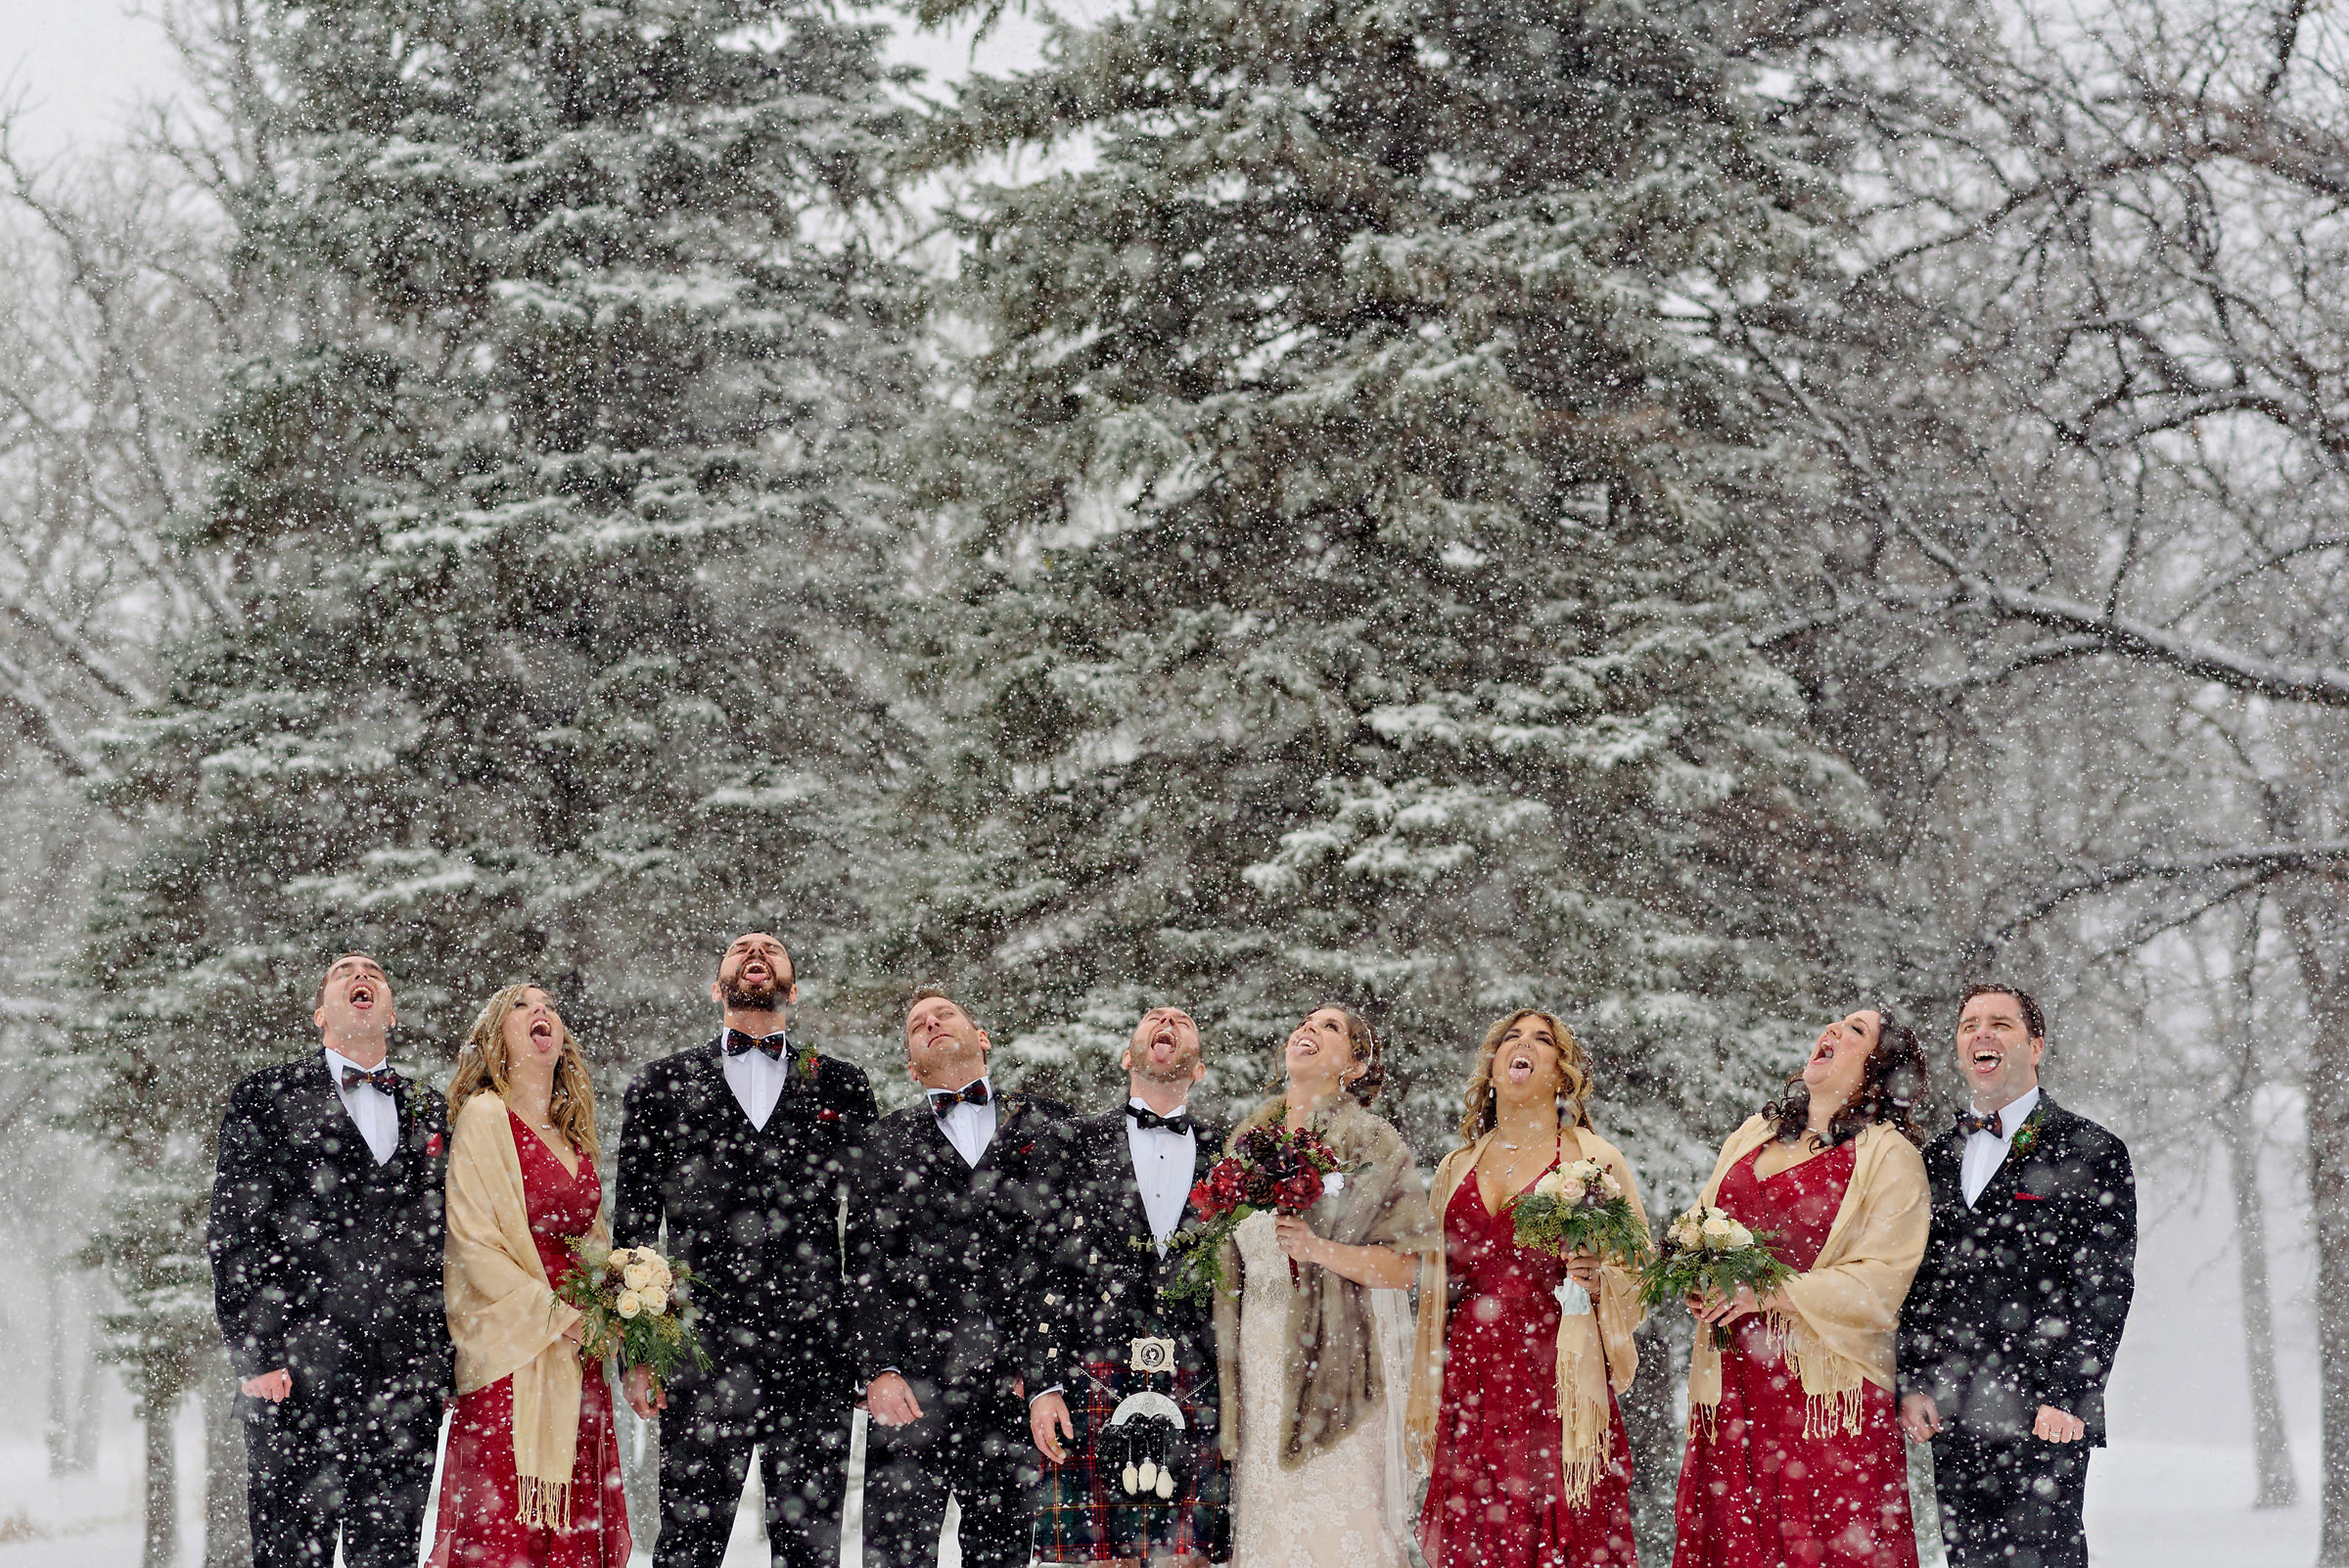 Group portrait of bridal party putting their tounges out in the snow - photo by Moore Photography